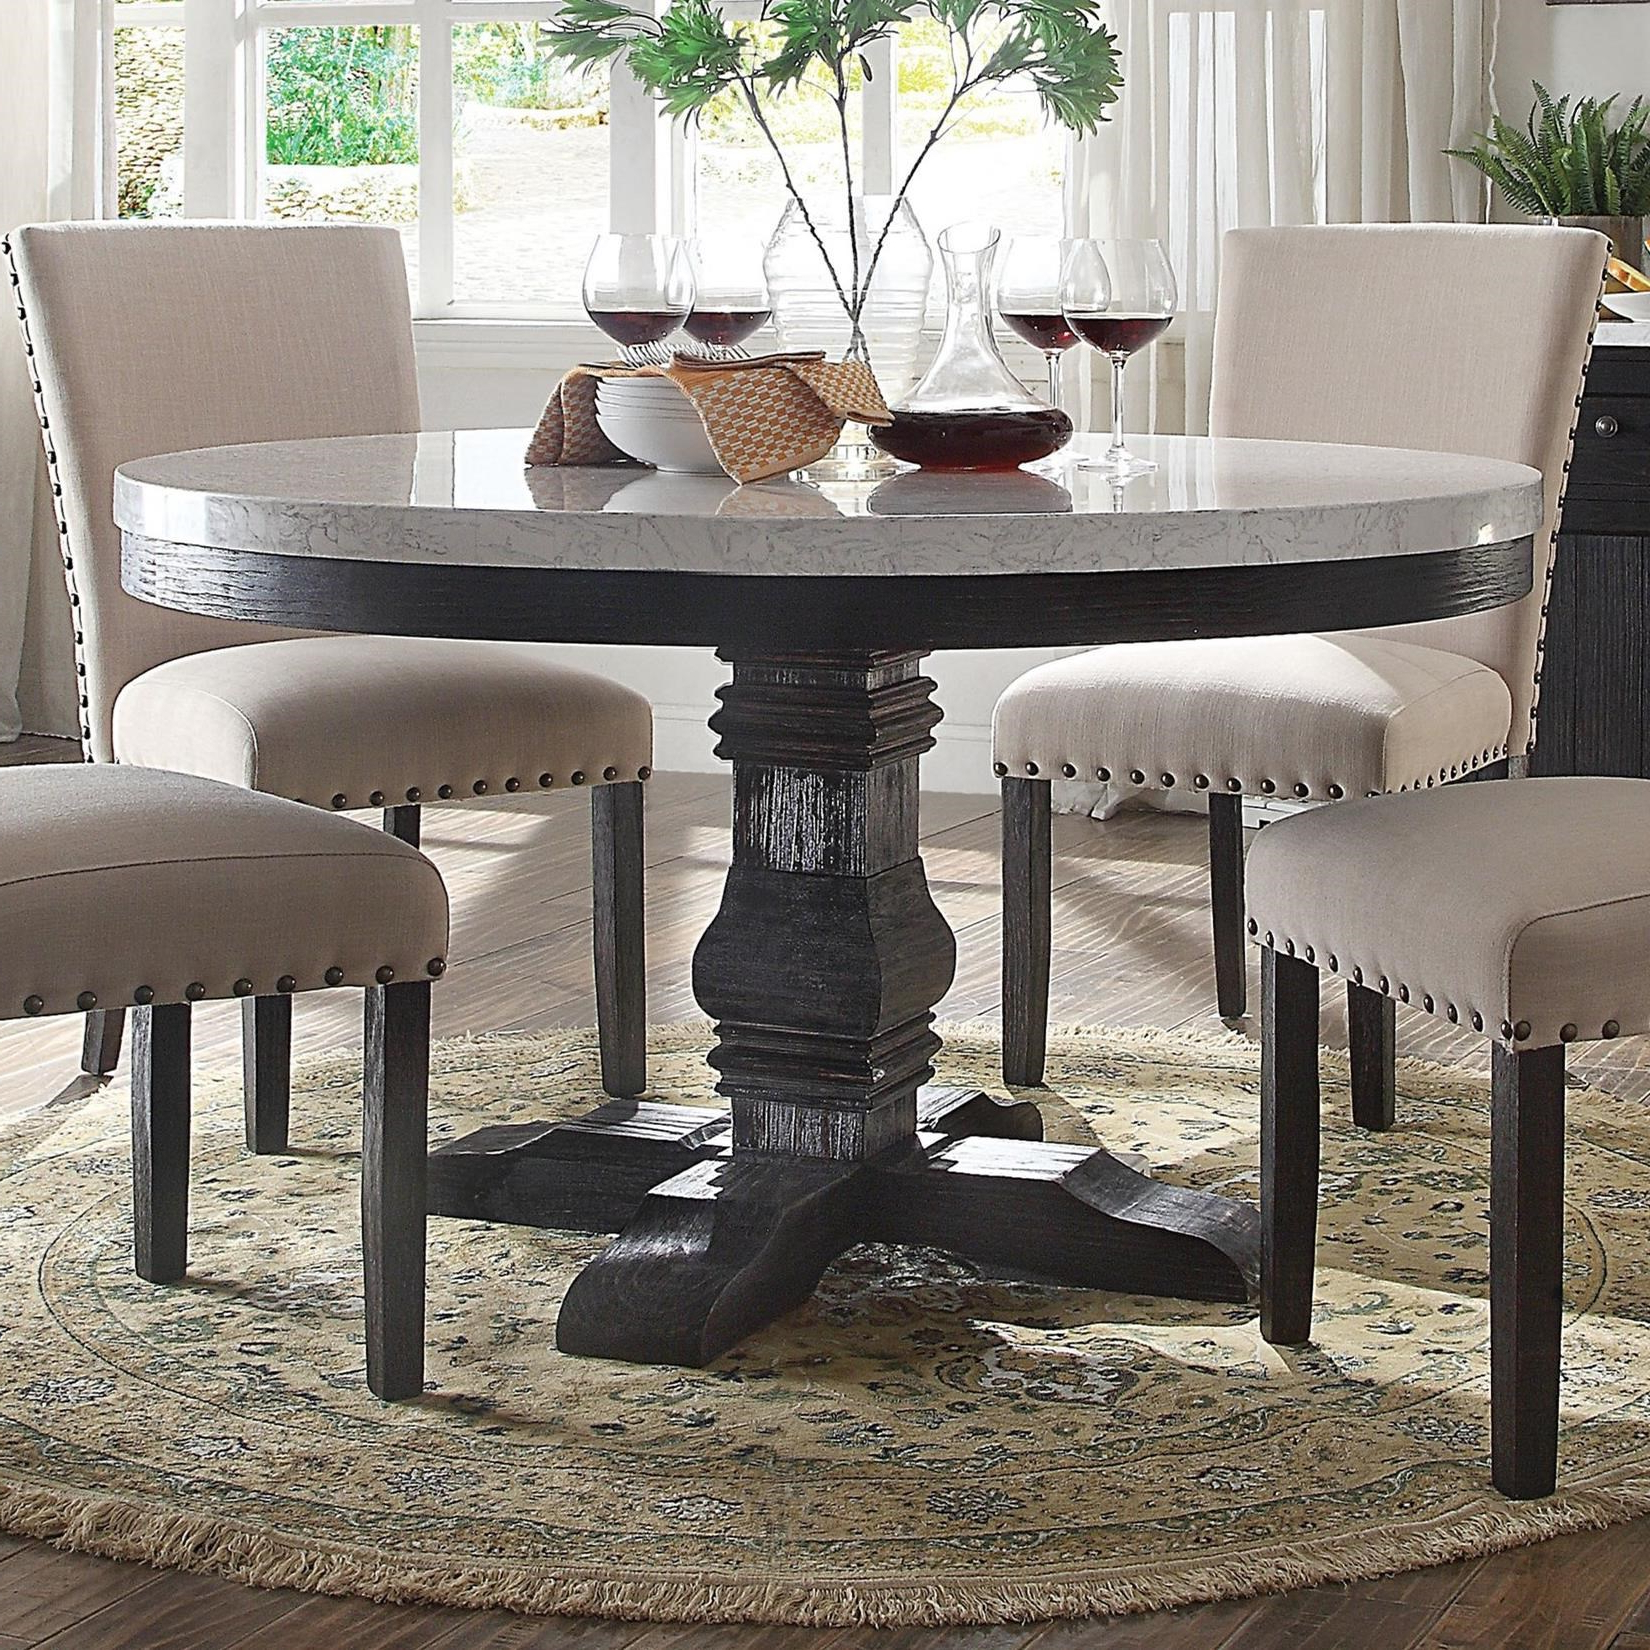 Recent Acme Furniture Nolan Round Pedestal Dining Table With White intended for Nolan Round Pedestal Dining Tables